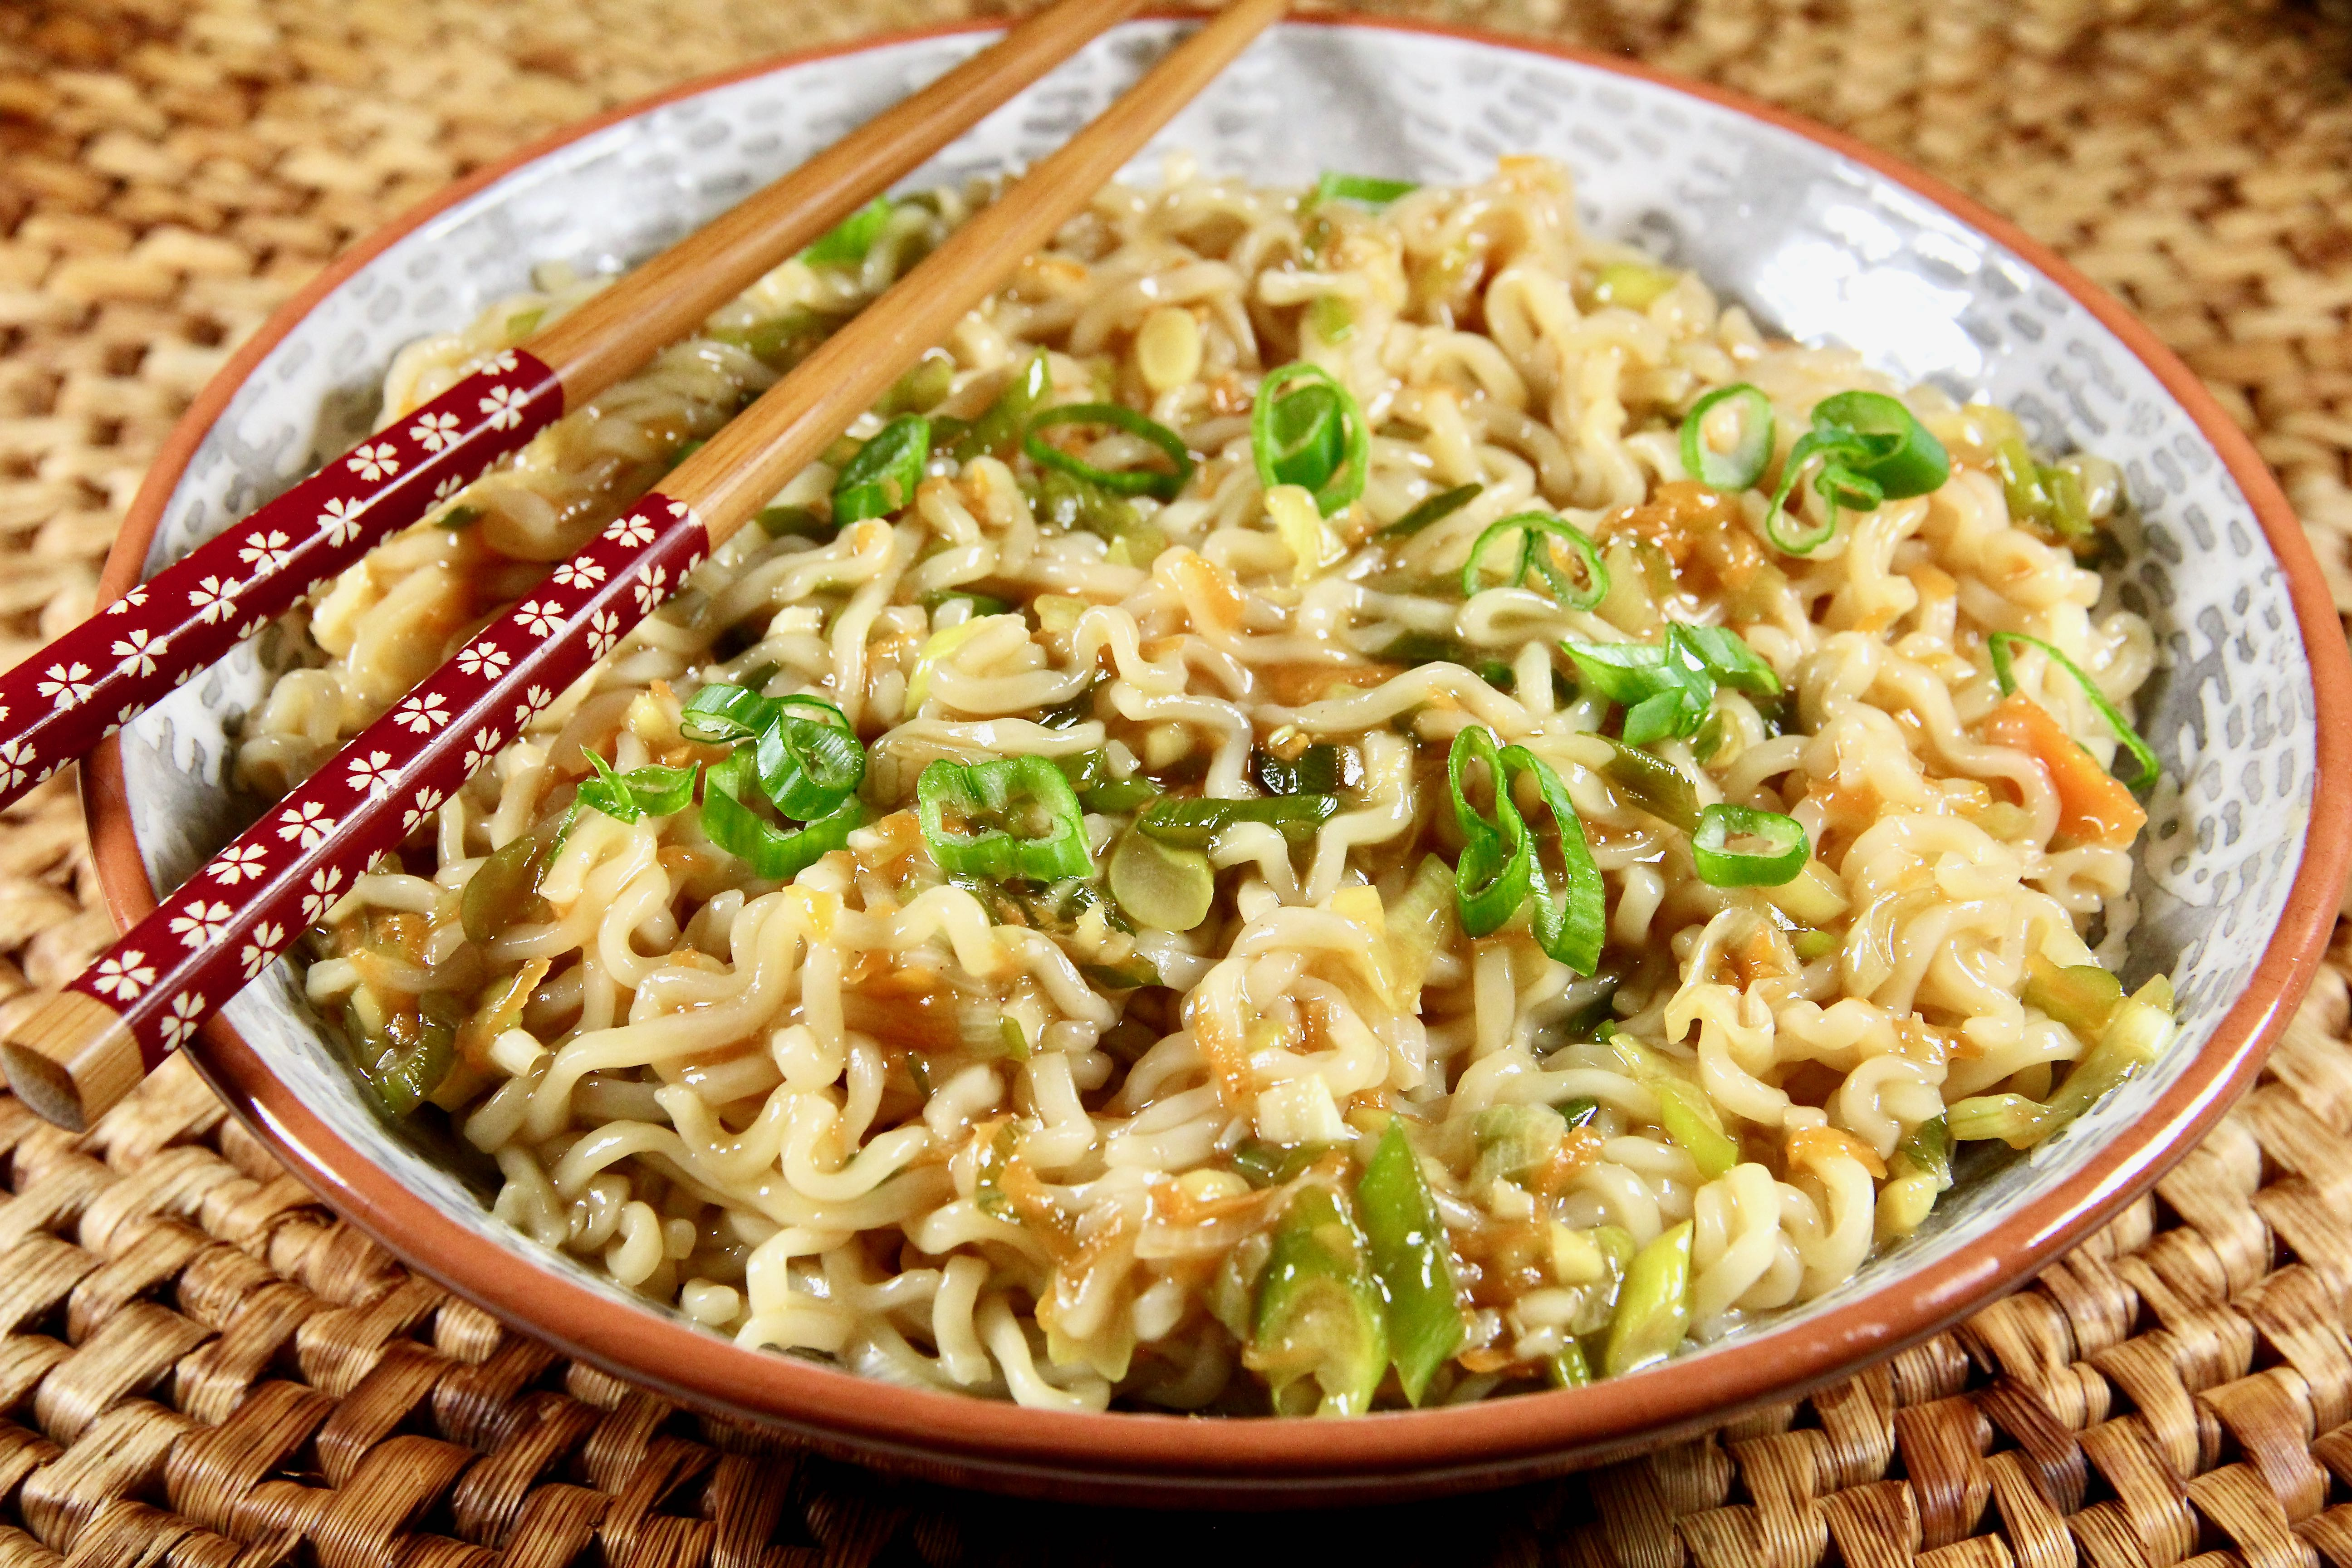 Ginger-Scallion Ramen Noodles